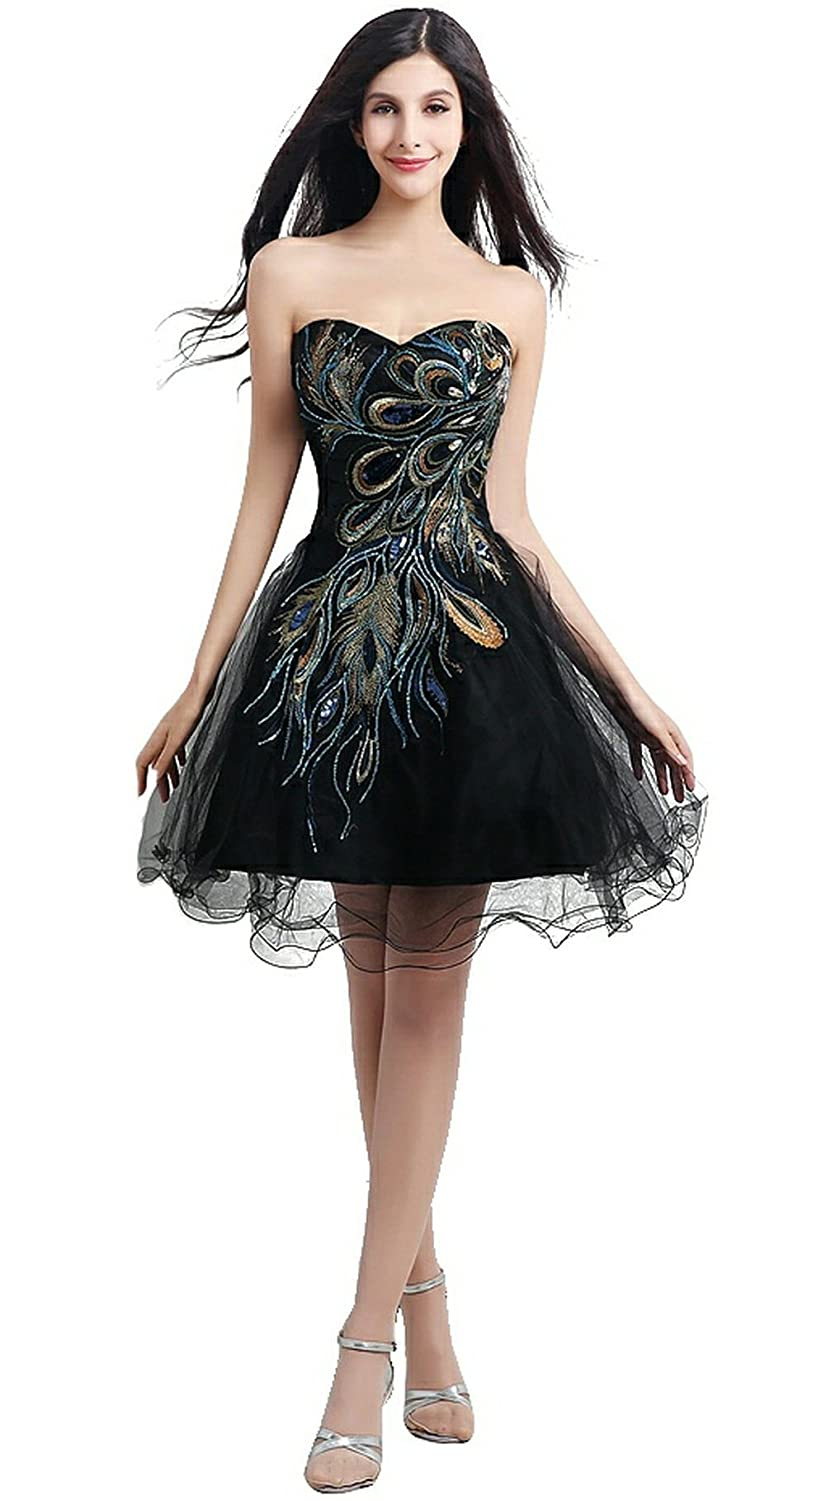 Lava-ring Women's Peacock Embroidery Sweetheart Lace-up Tulle Short Prom Dress